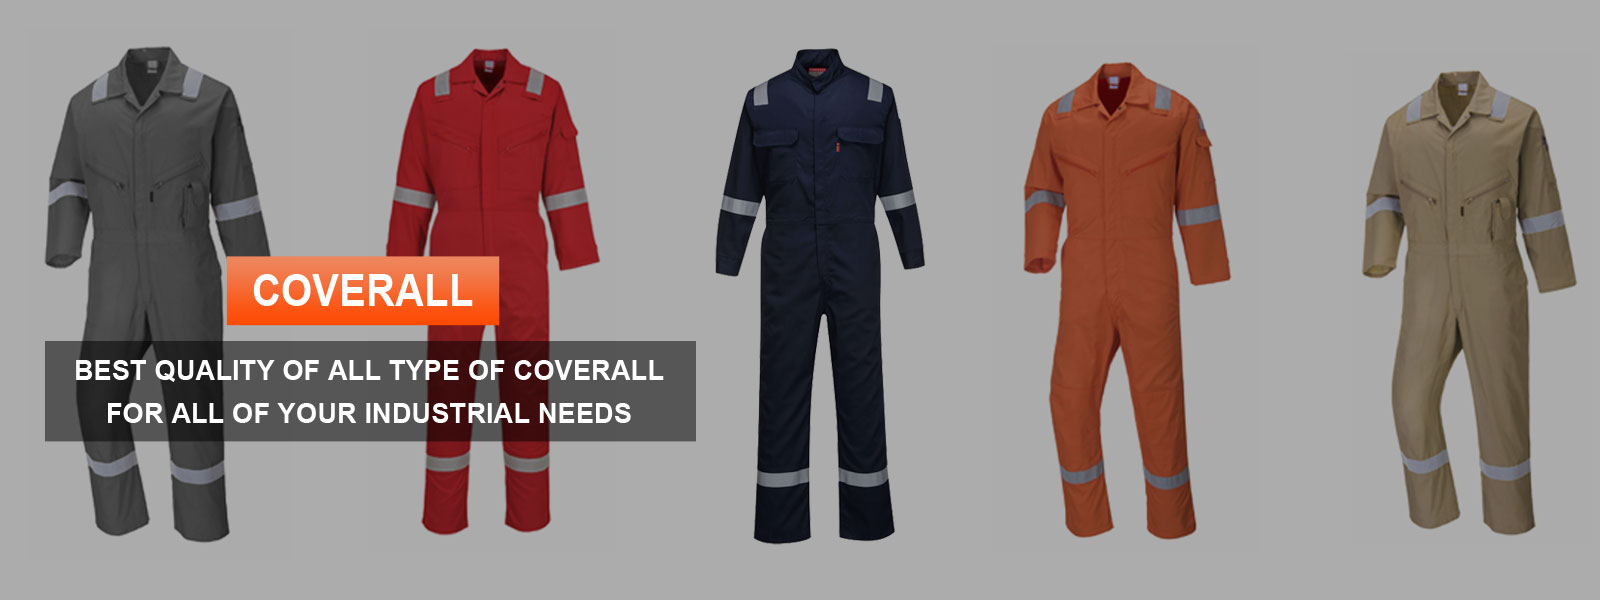 Coverall Manufacturers in Lithuania